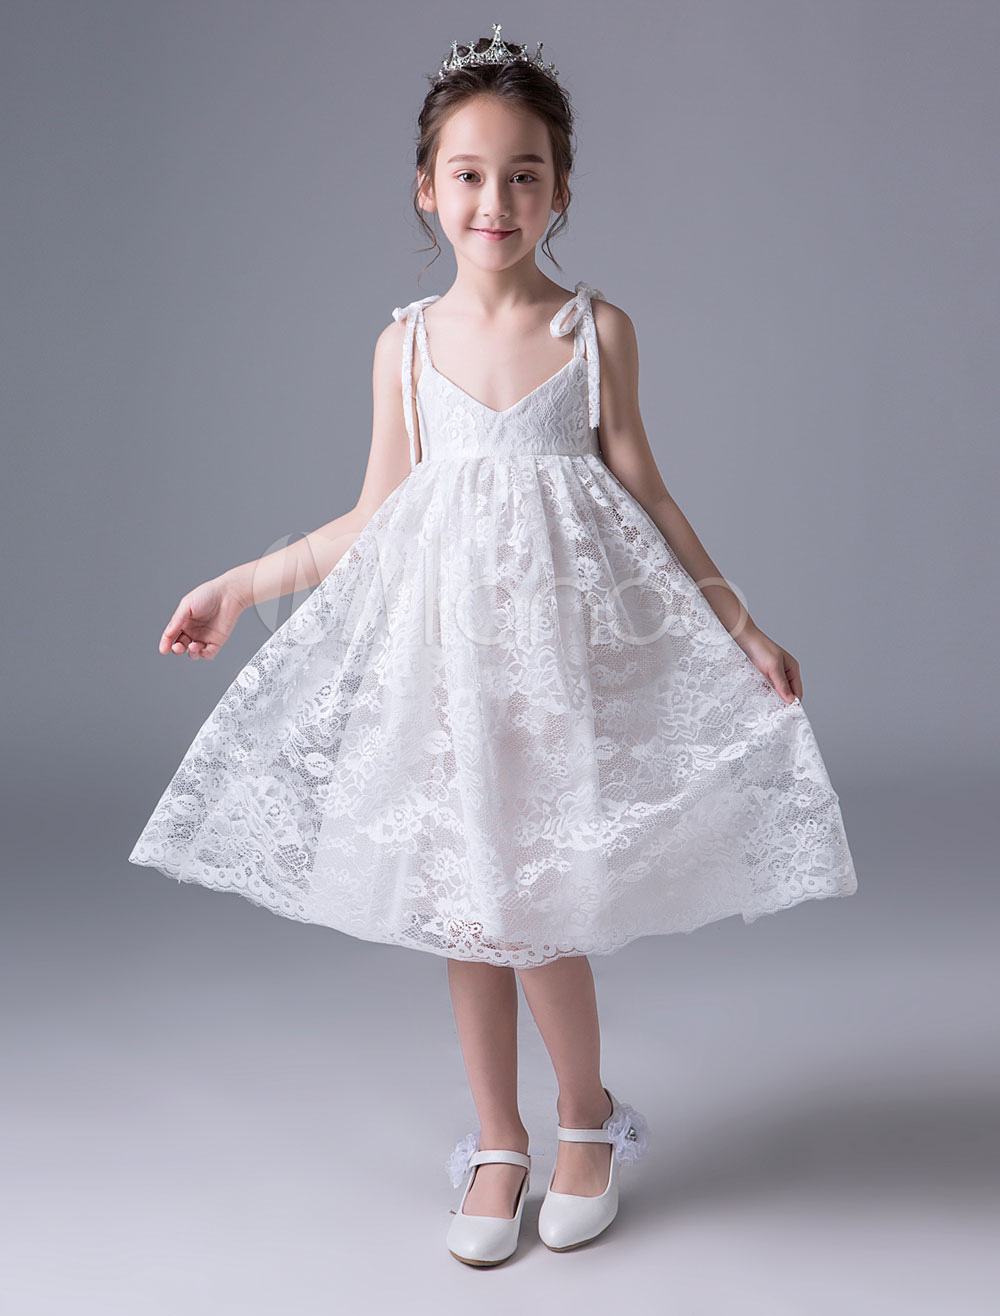 Buy Lace Flower Girl Dresses Ivory V Neck Kids Slip Dress Knee Length Short Party Dresses for $56.94 in Milanoo store